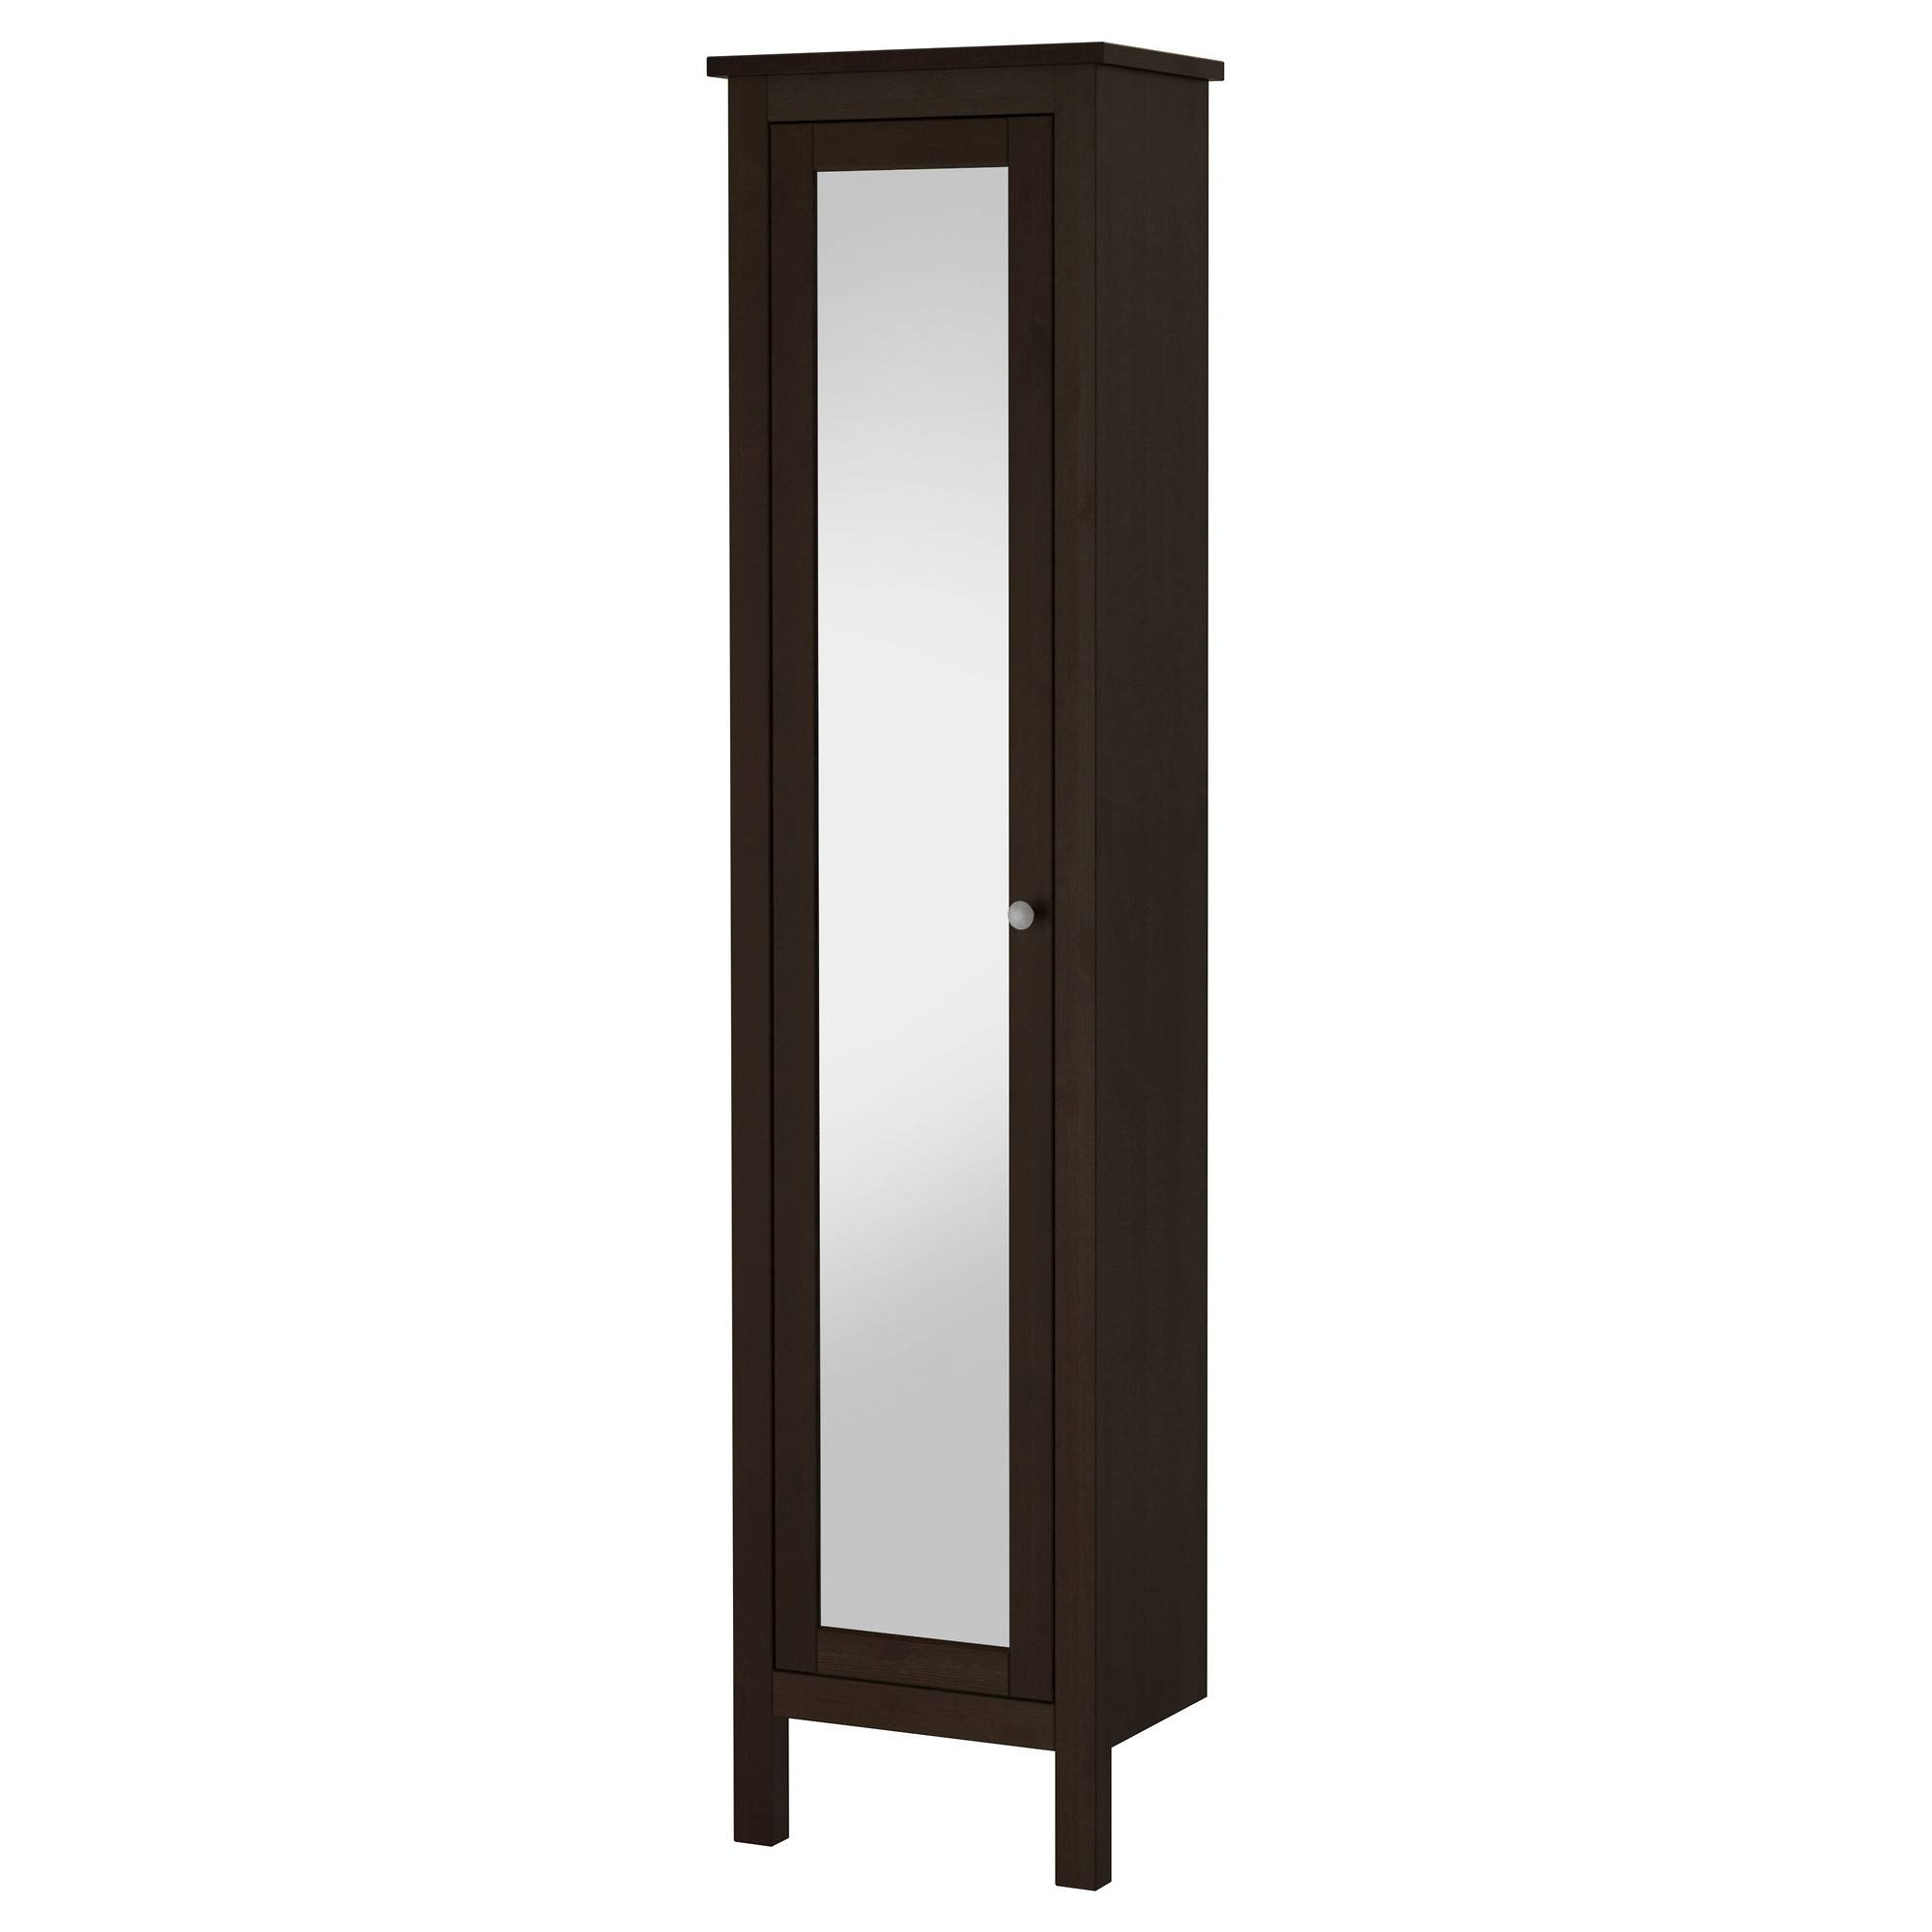 Hemnes High Cabinet With Mirror Door - White - Ikea with Tall Narrow Mirrors (Image 5 of 15)